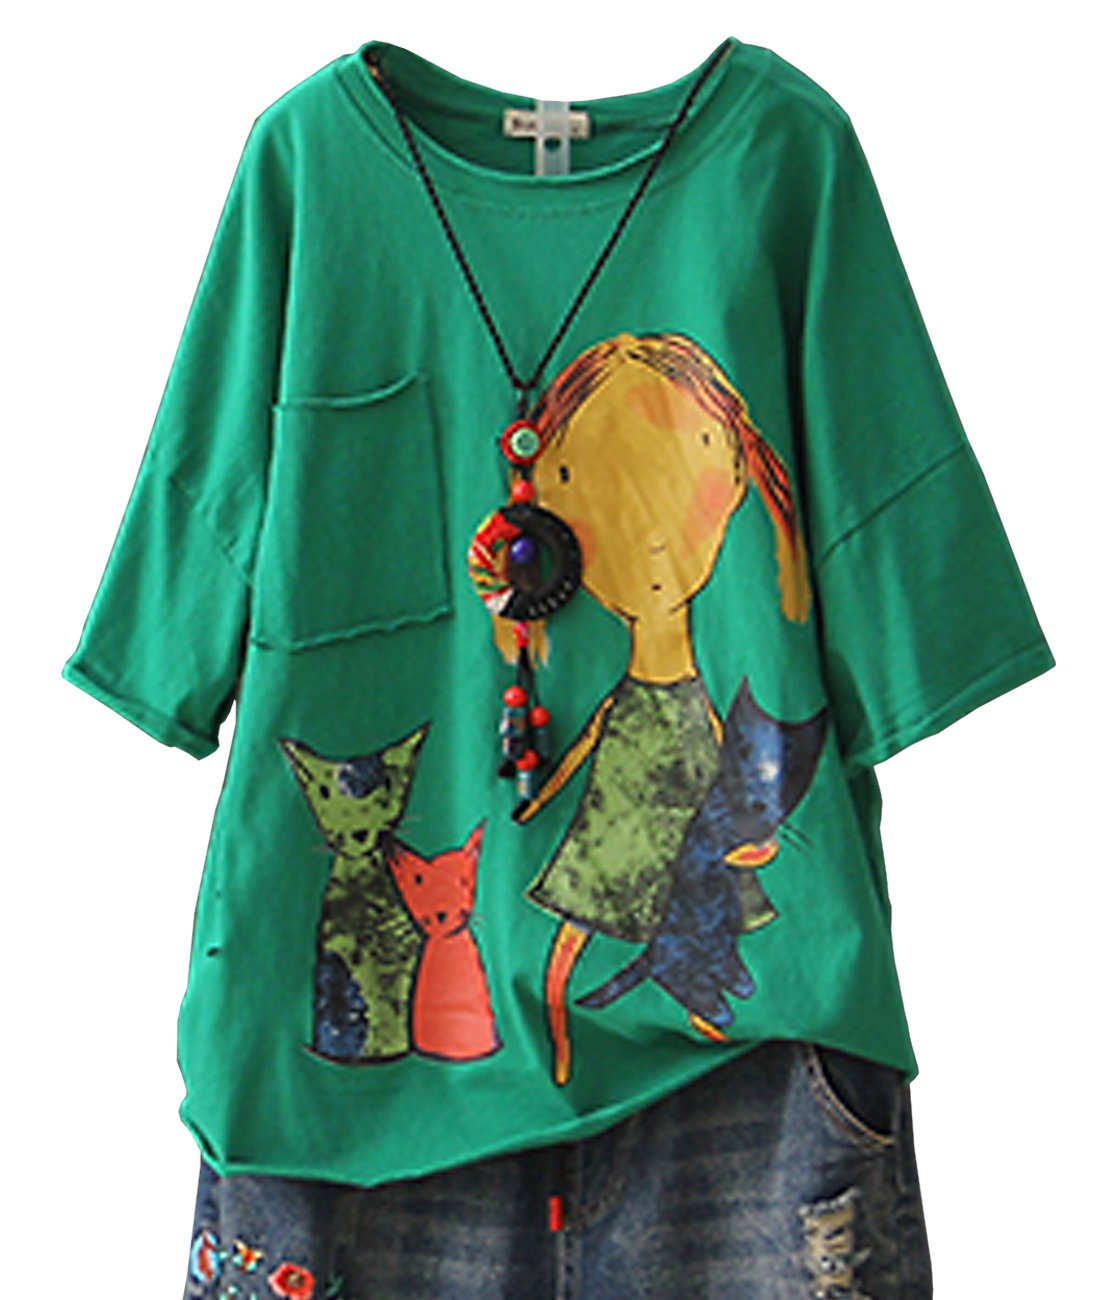 YESNO E78 Women Casual Loose Tee T-Shirts Tops 100% Cotton Cartoon Printed Rolled Hem Ripped Short Sleeve Pocket